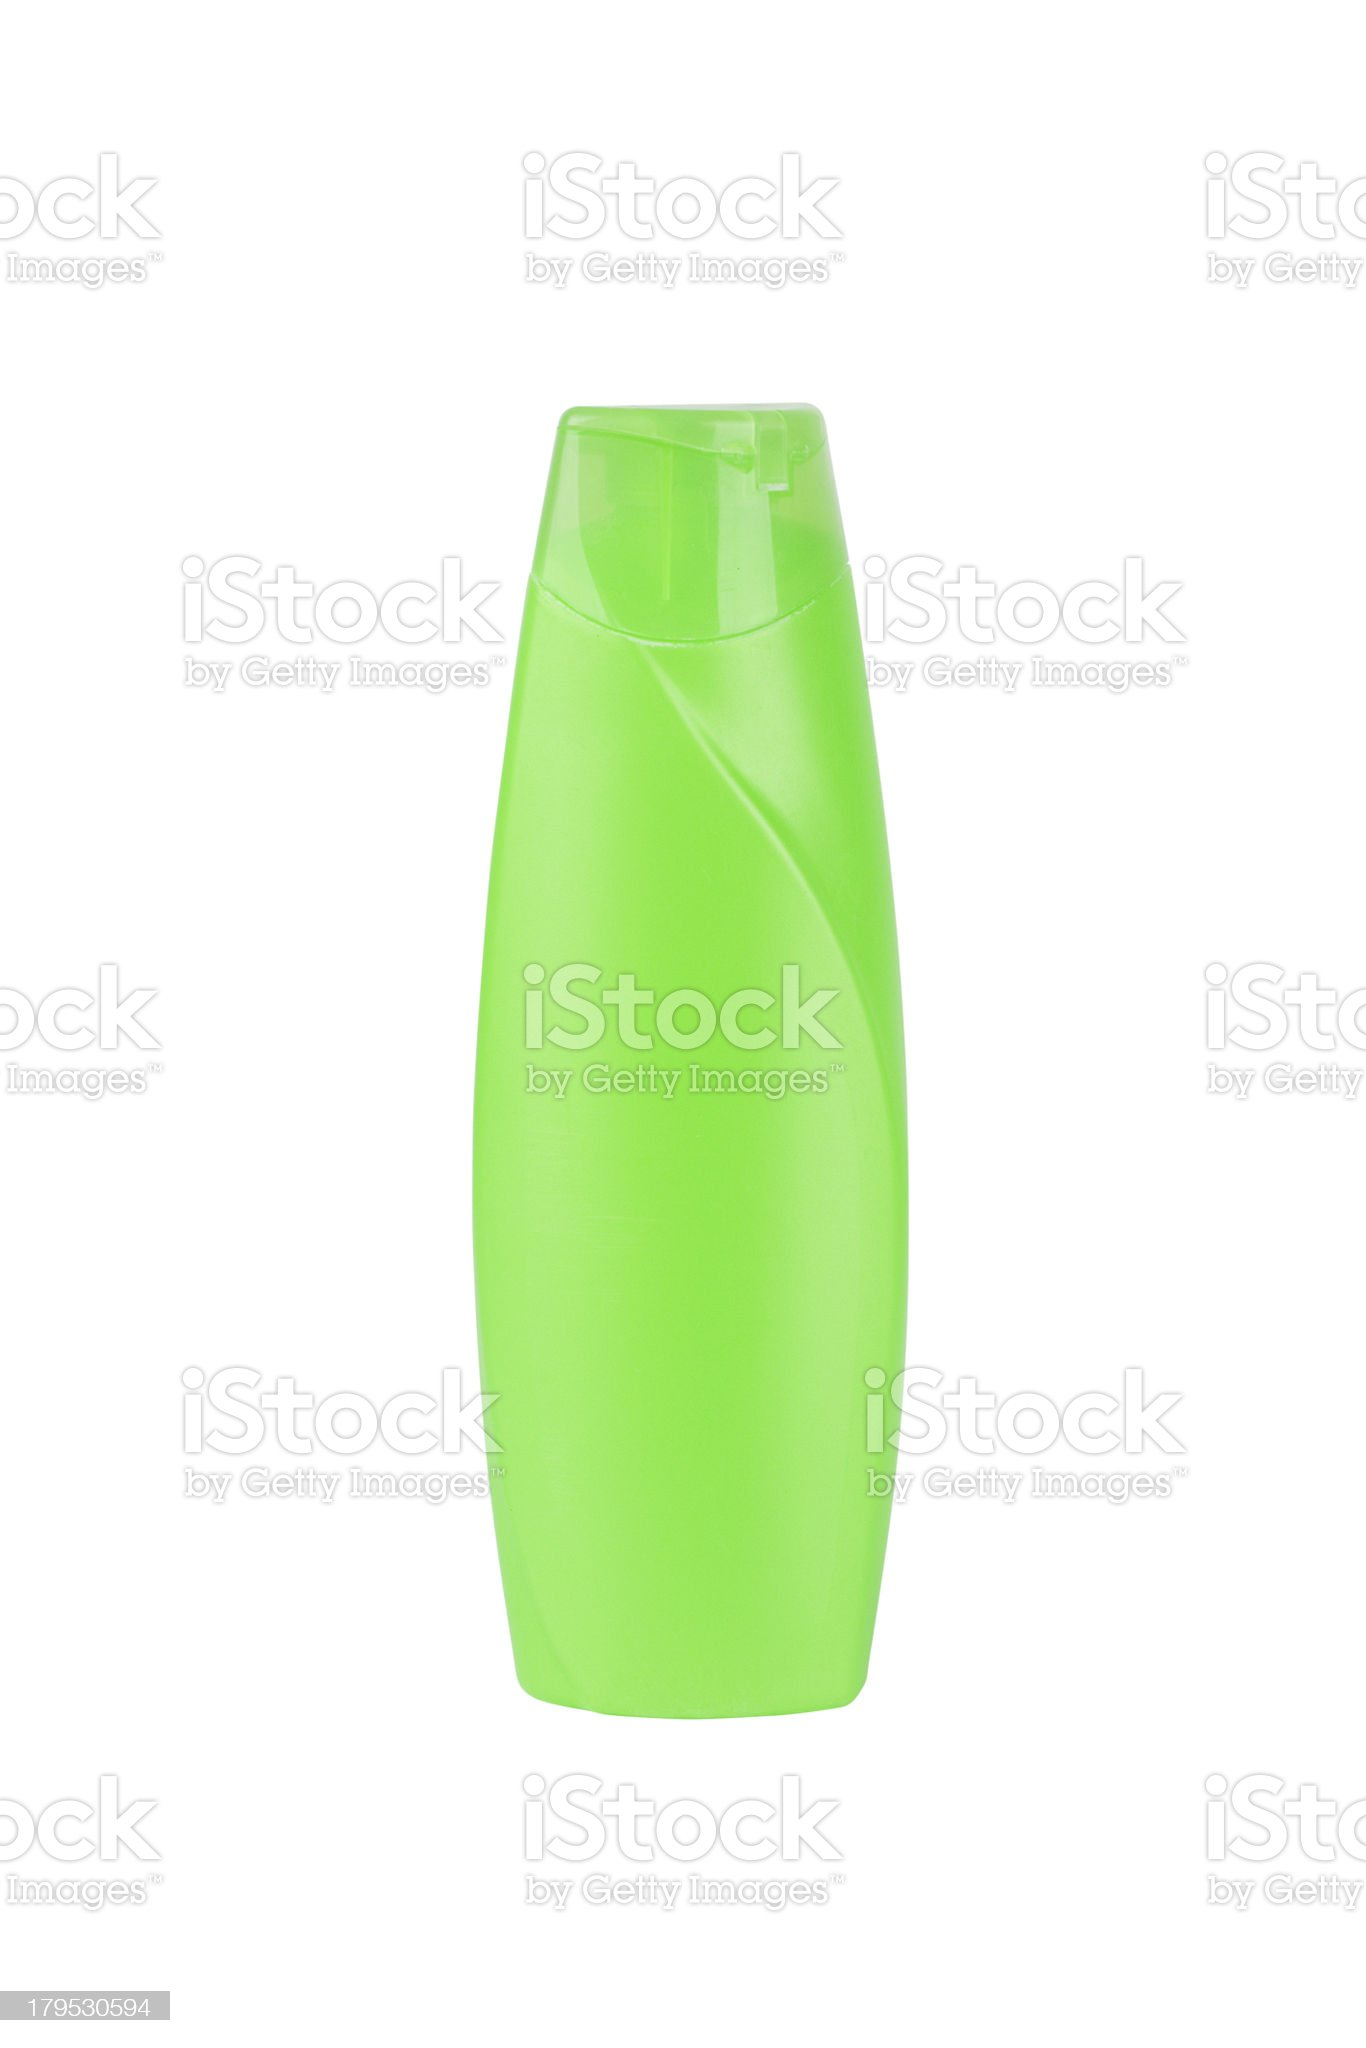 Green plastic bottle royalty-free stock photo